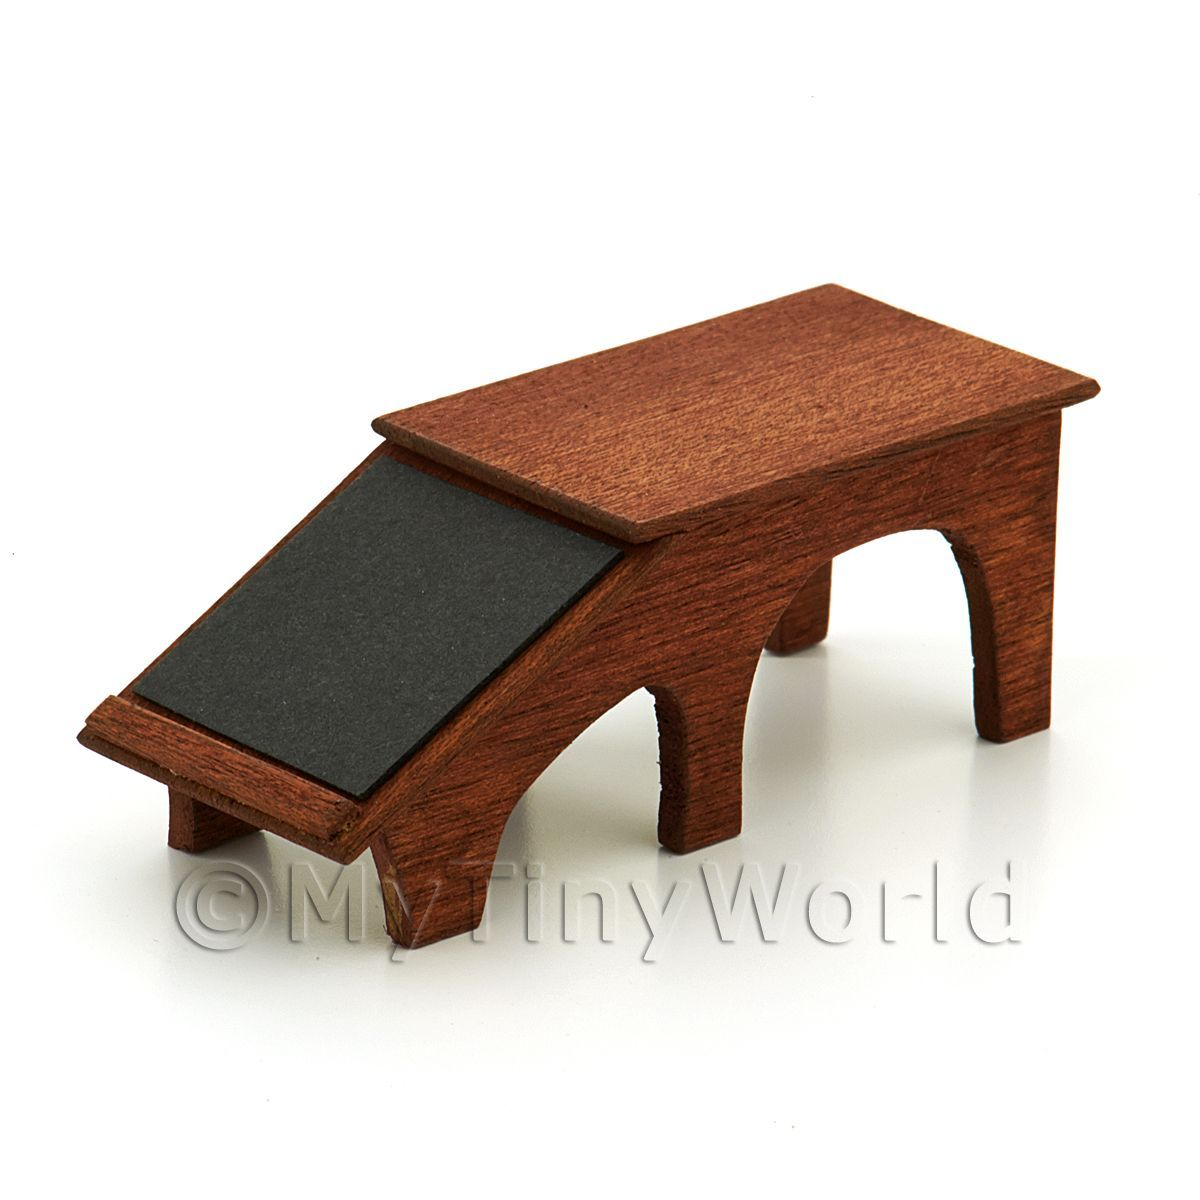 Handmade Dolls House Miniature Shop Foot Stool